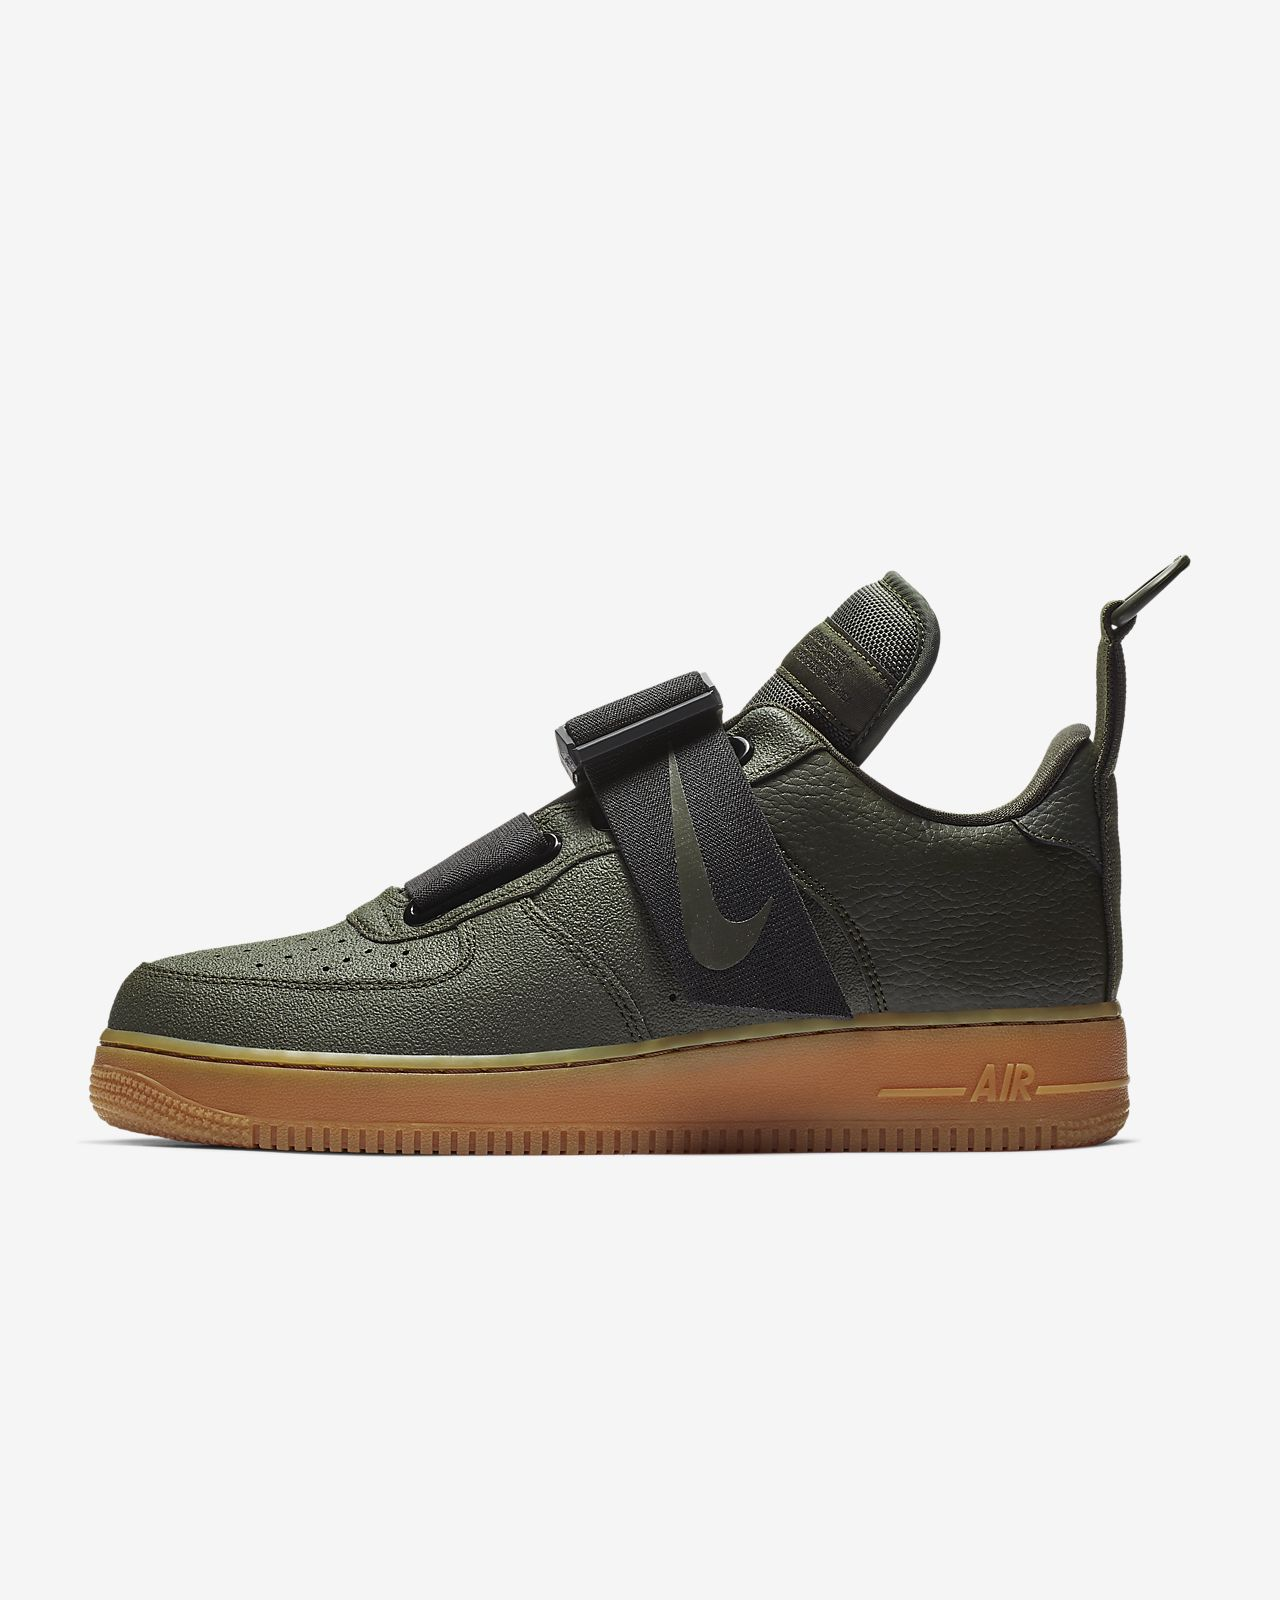 quality design 0443f 1ca11 ... Nike Air Force 1 Utility-sko til mænd